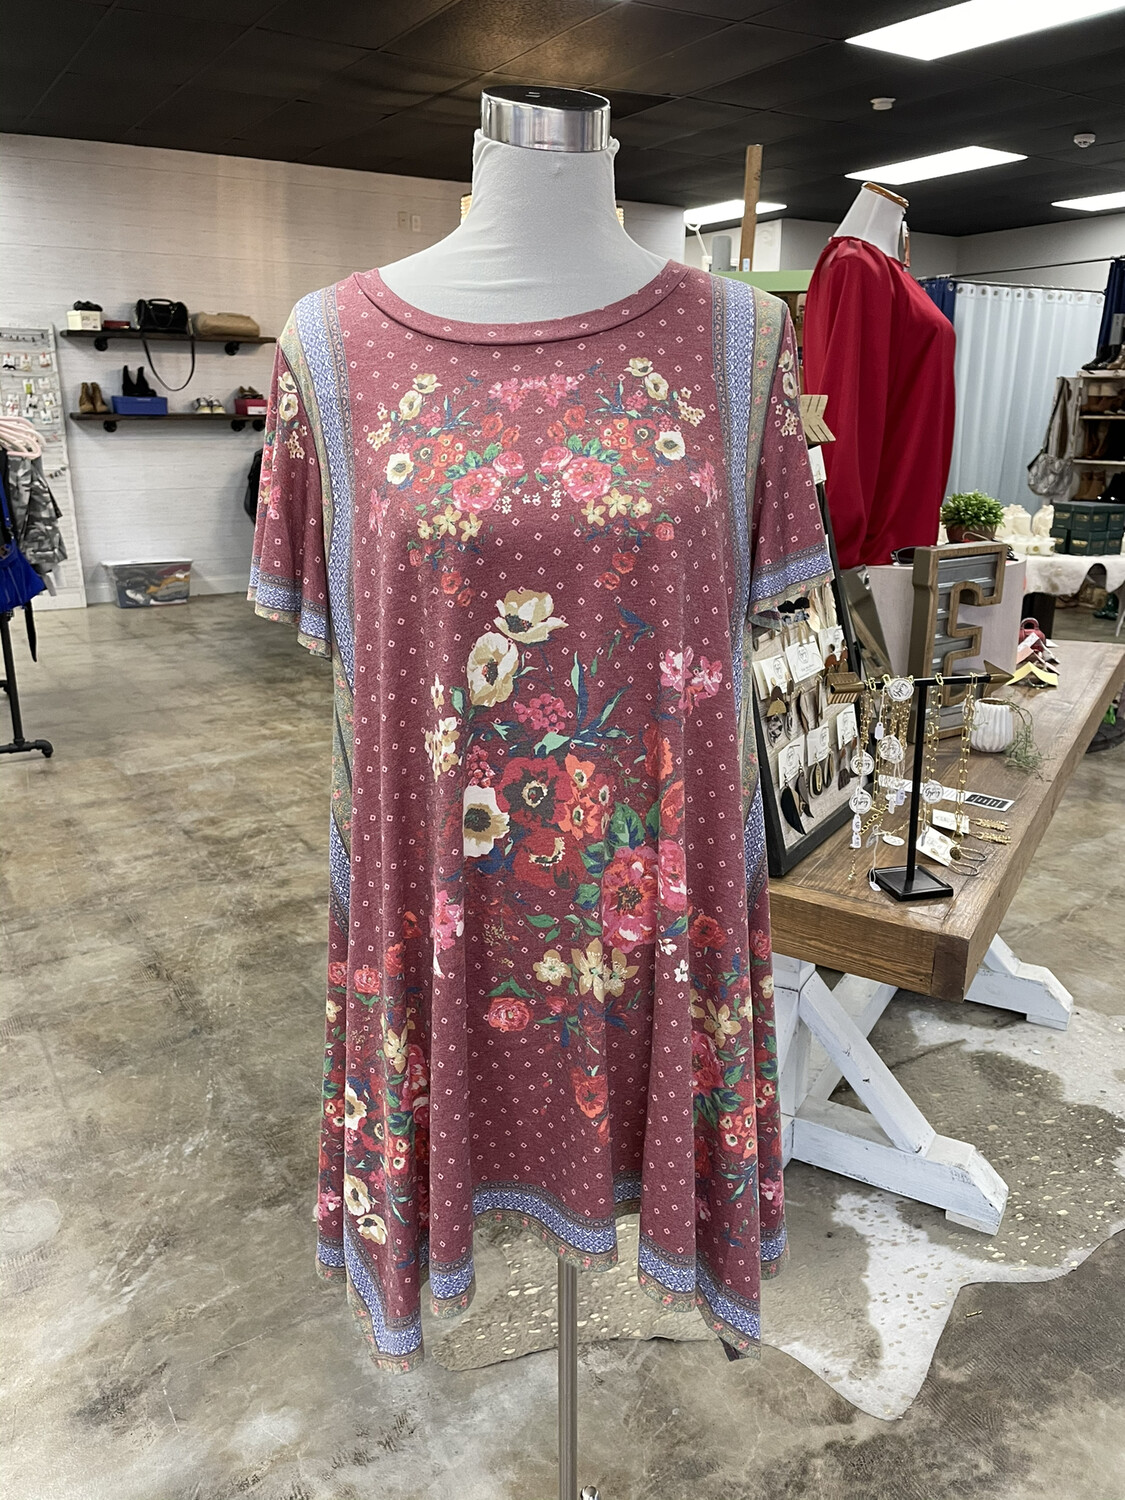 Umgee Faded Floral Handkerchief Dress - S